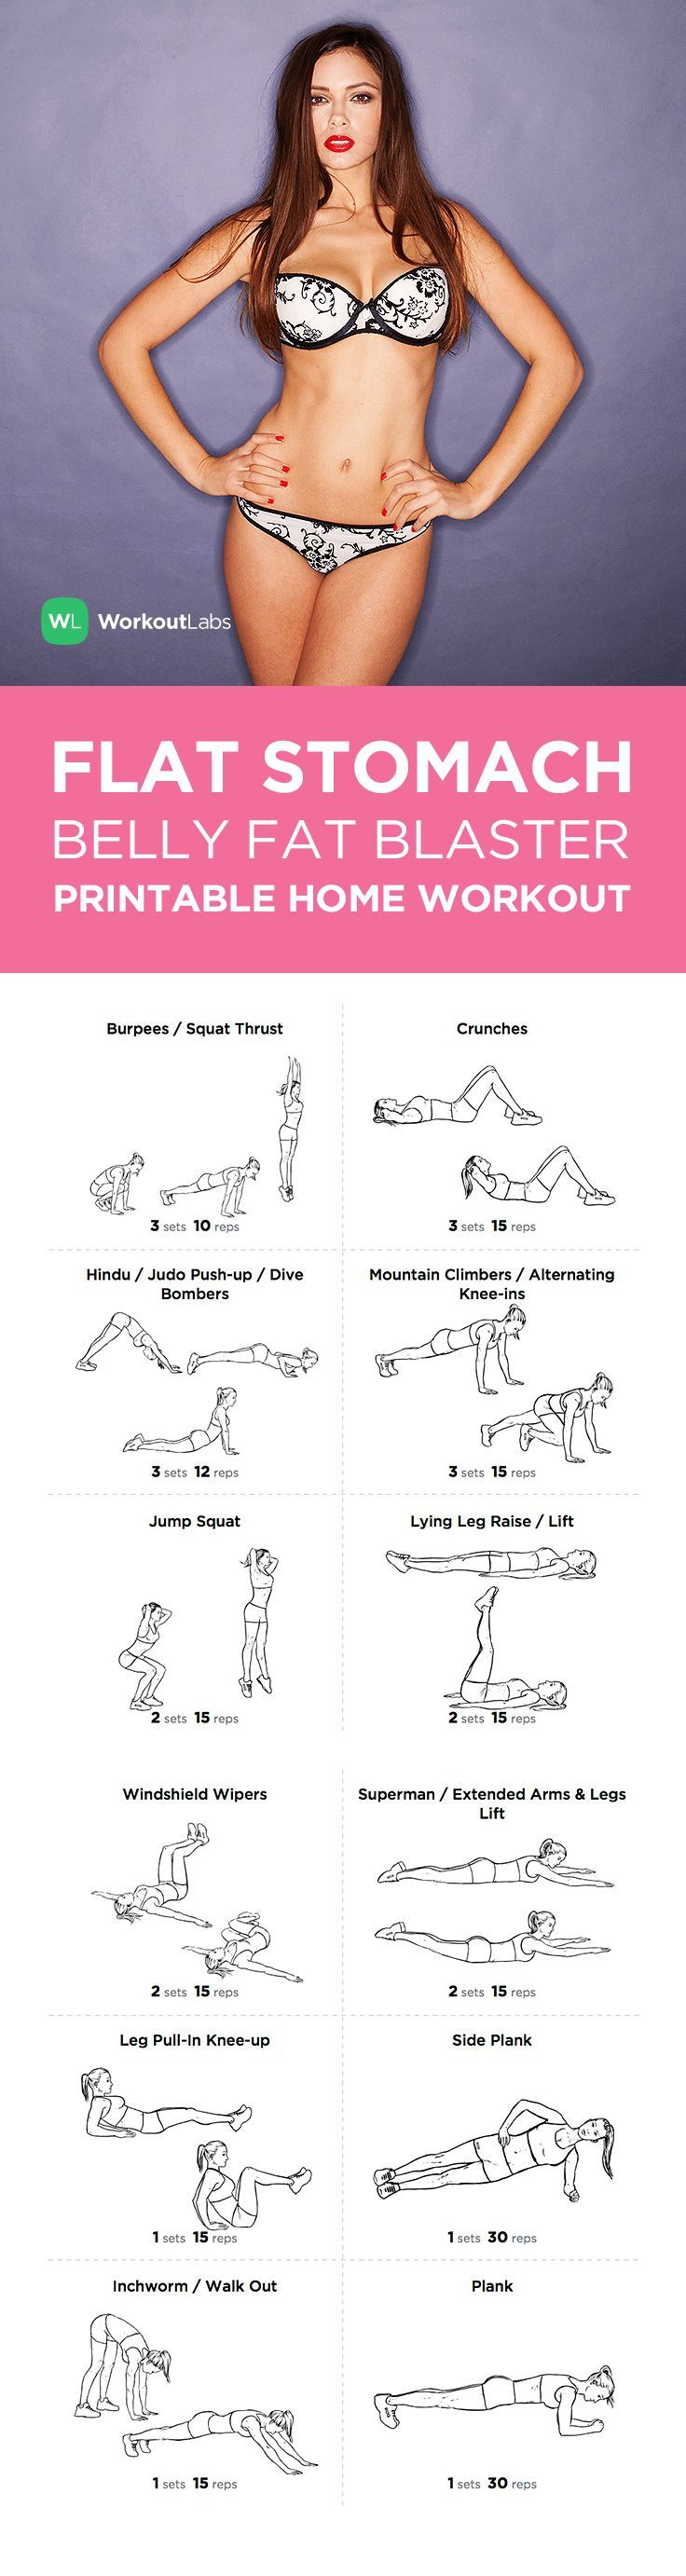 12 Killer Flat Stomach Workout You Can Do At Home. Need to lose that belly fat? Looking for good flat stomach workout that you can do at home? Well, you